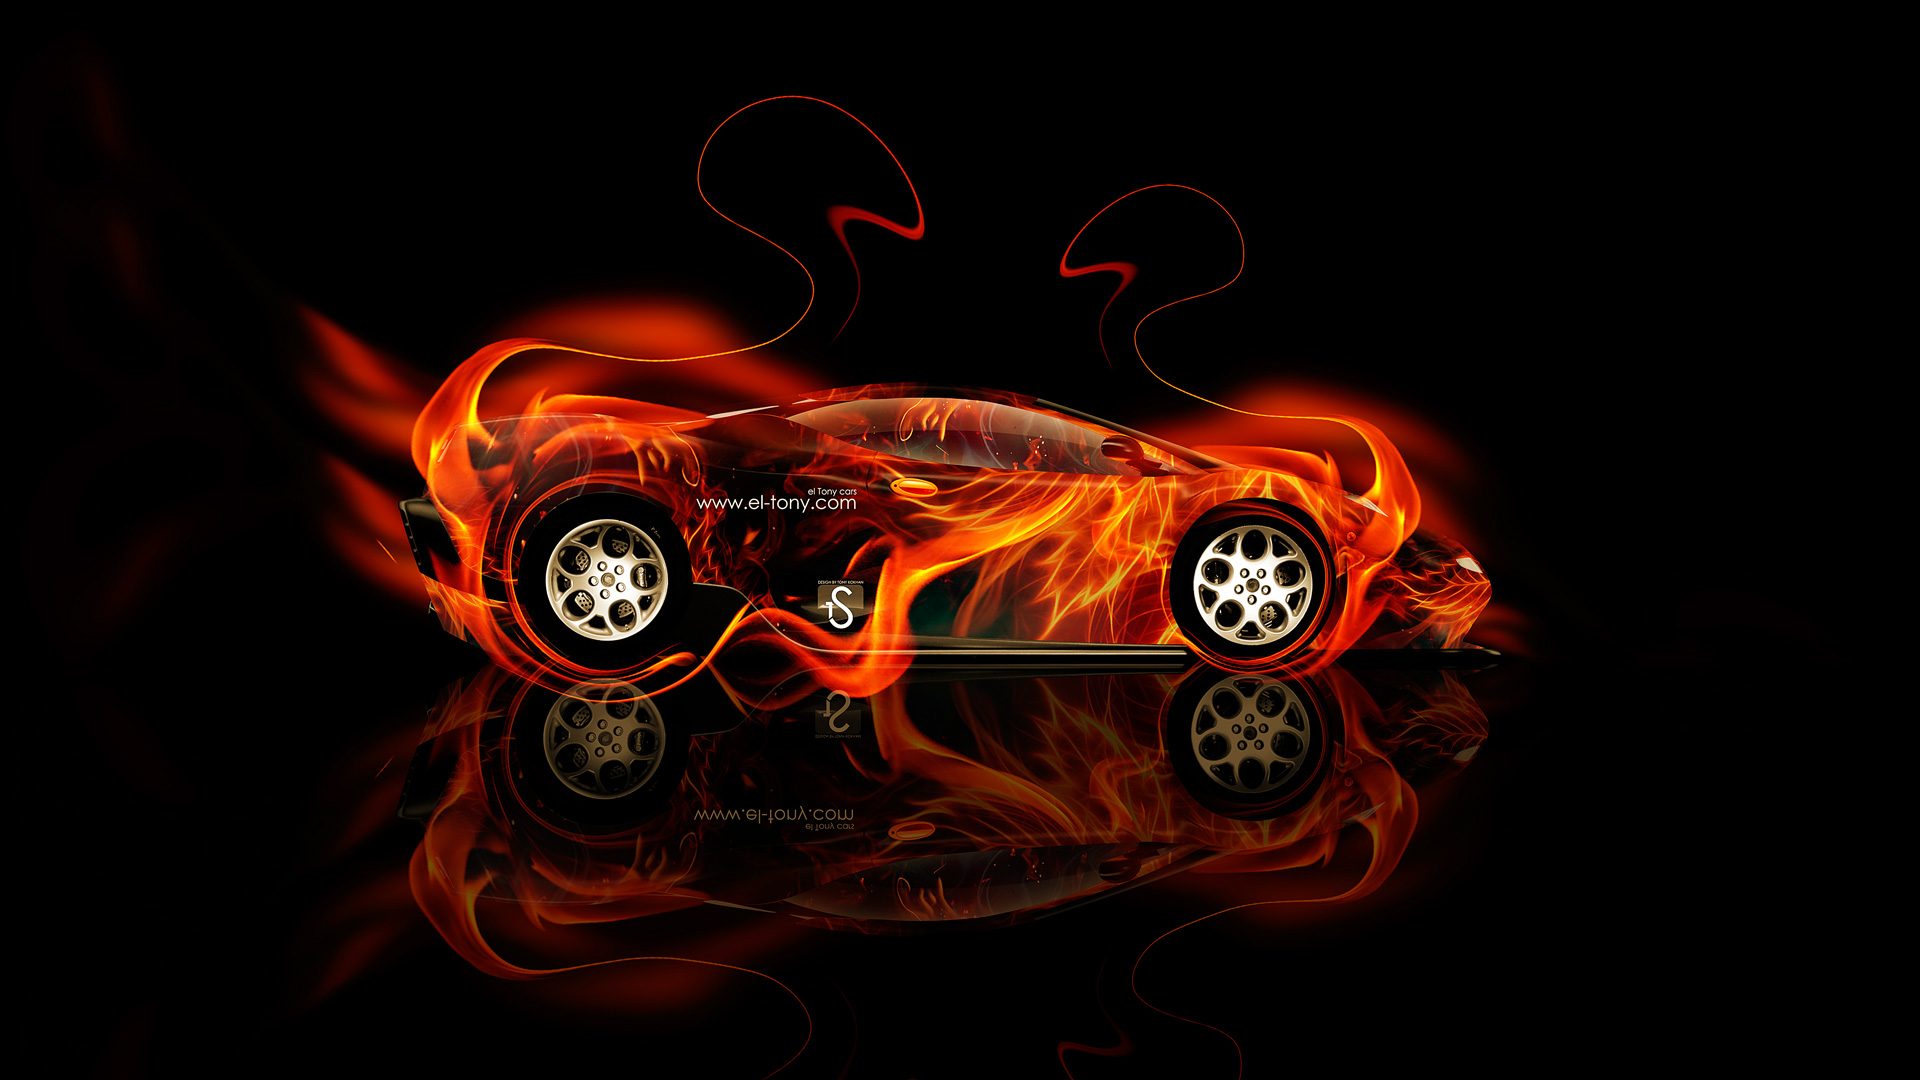 Charmant Lamborghini L147 Canto Fire Abstract Car 2014 HD